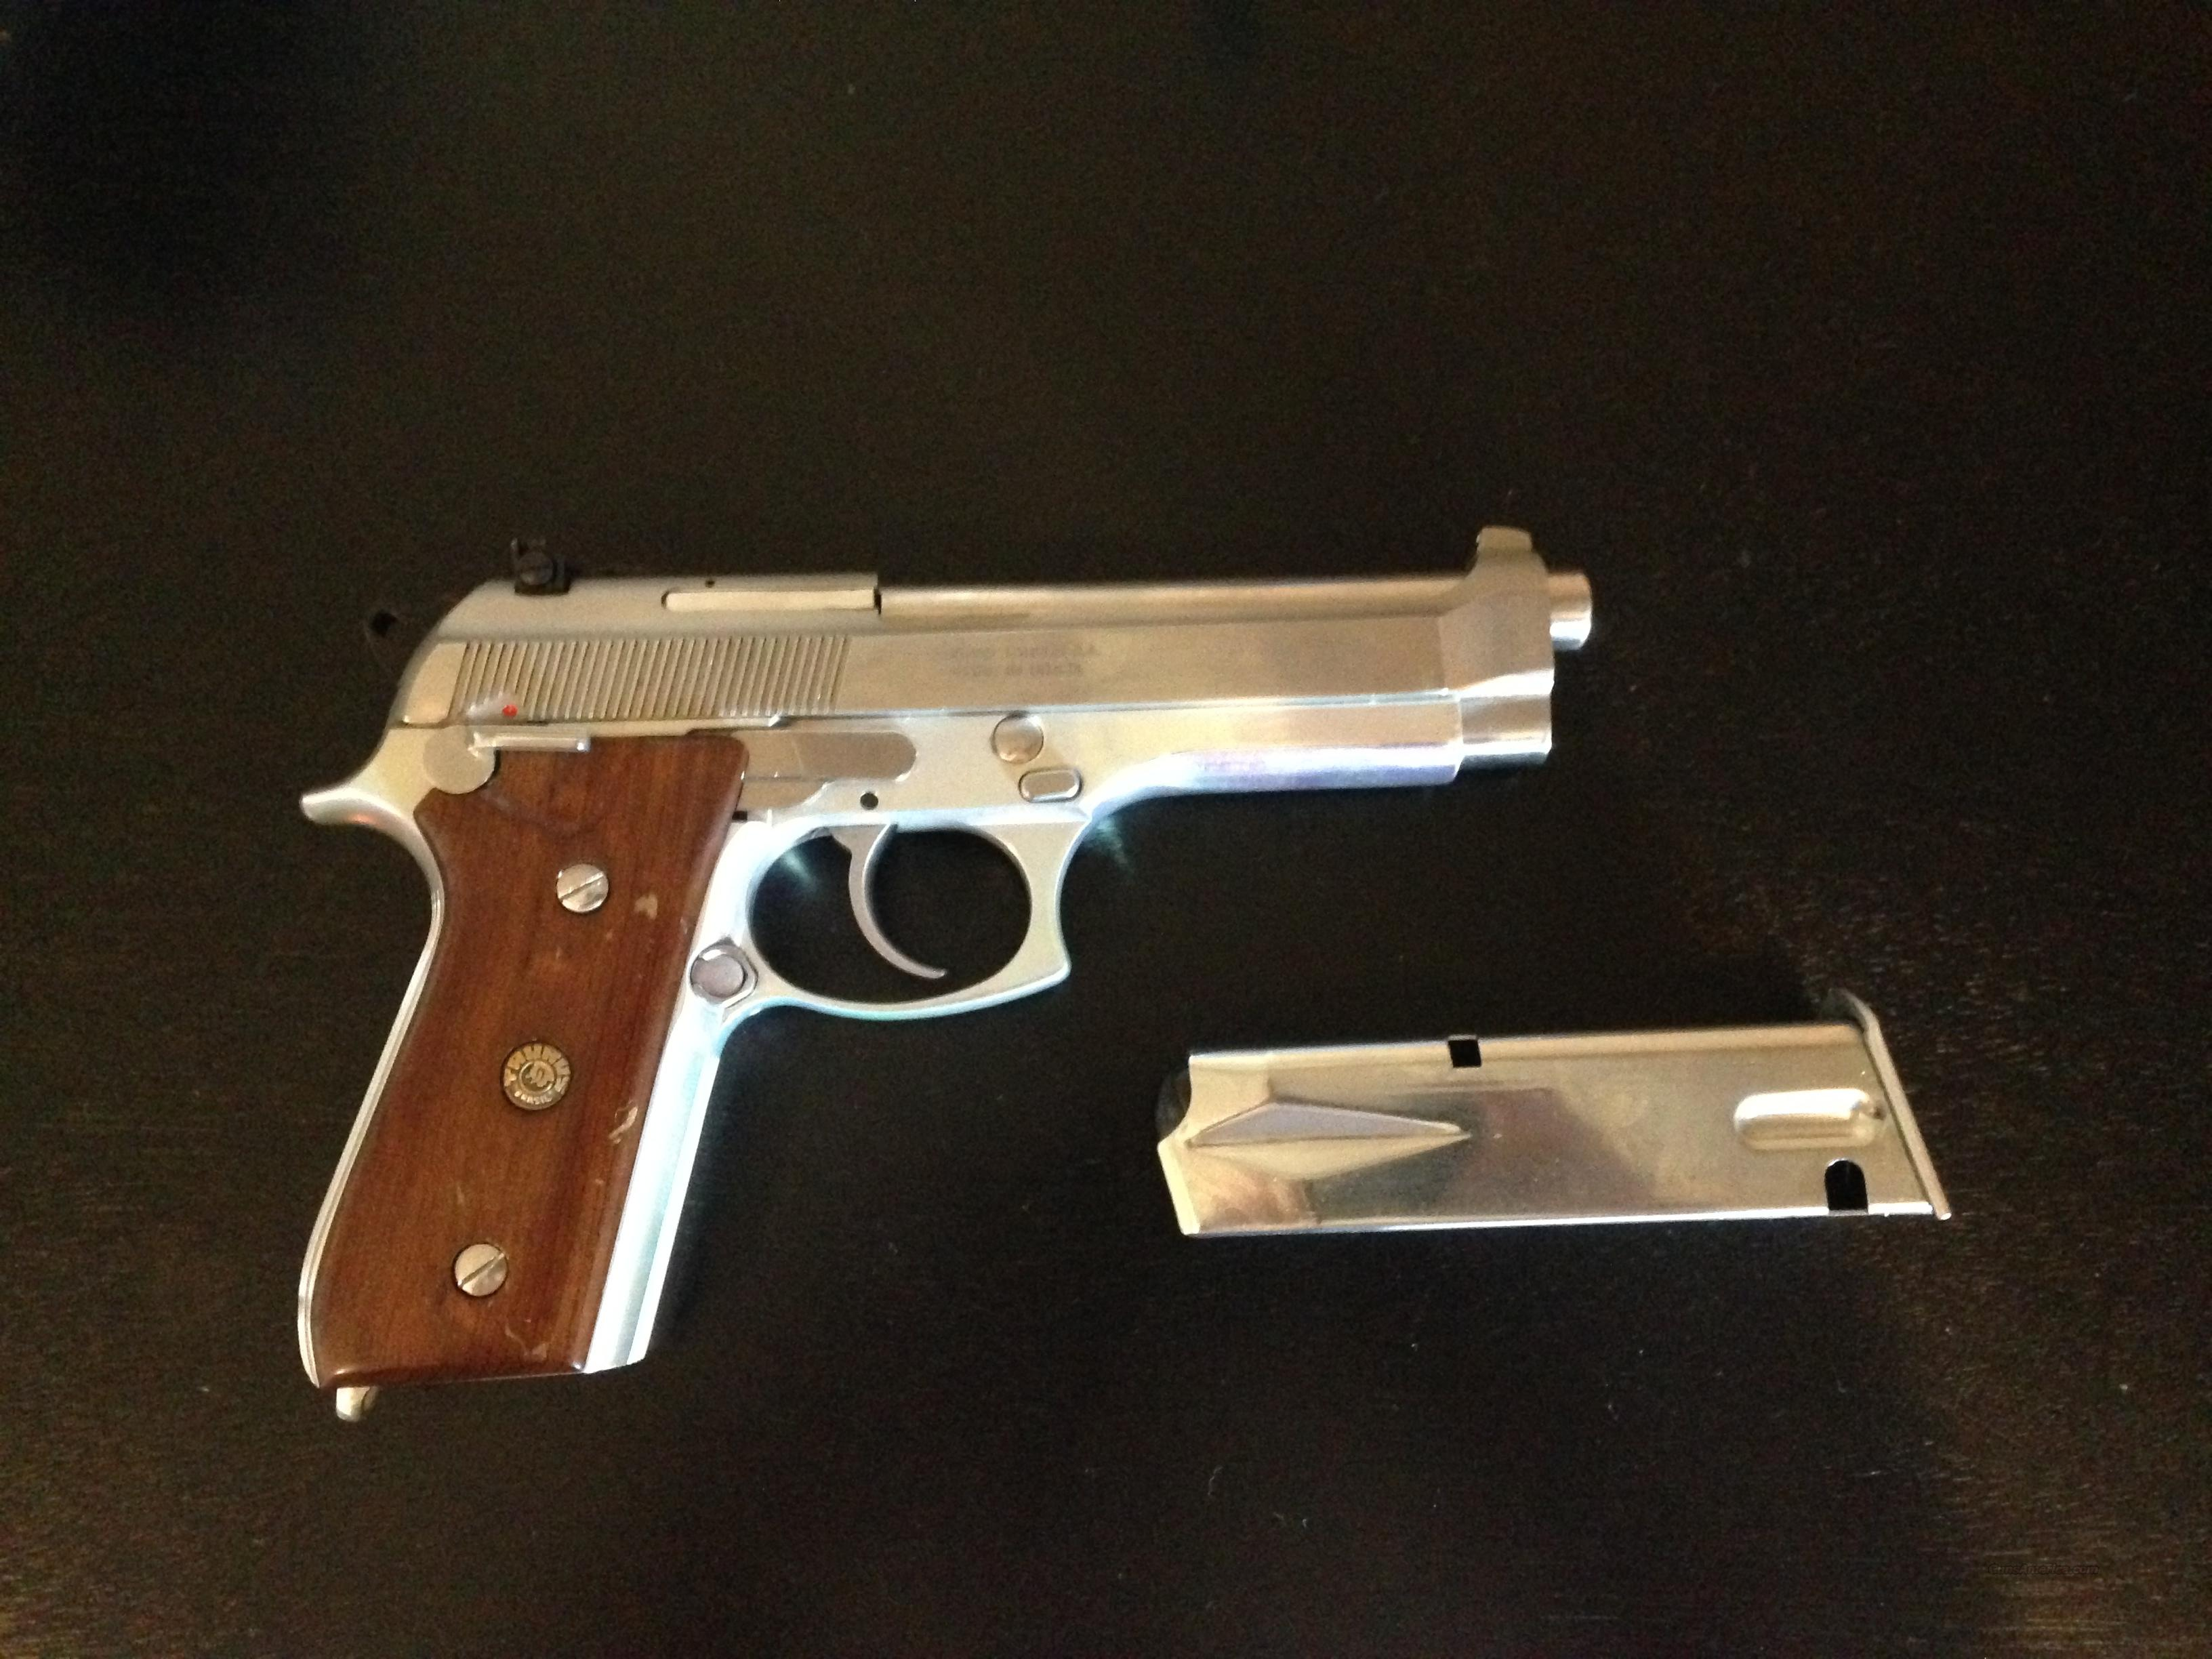 Taurus PT99AFS, Wood grips, great condition!  Guns > Pistols > Taurus Pistols/Revolvers > Pistols > Steel Frame